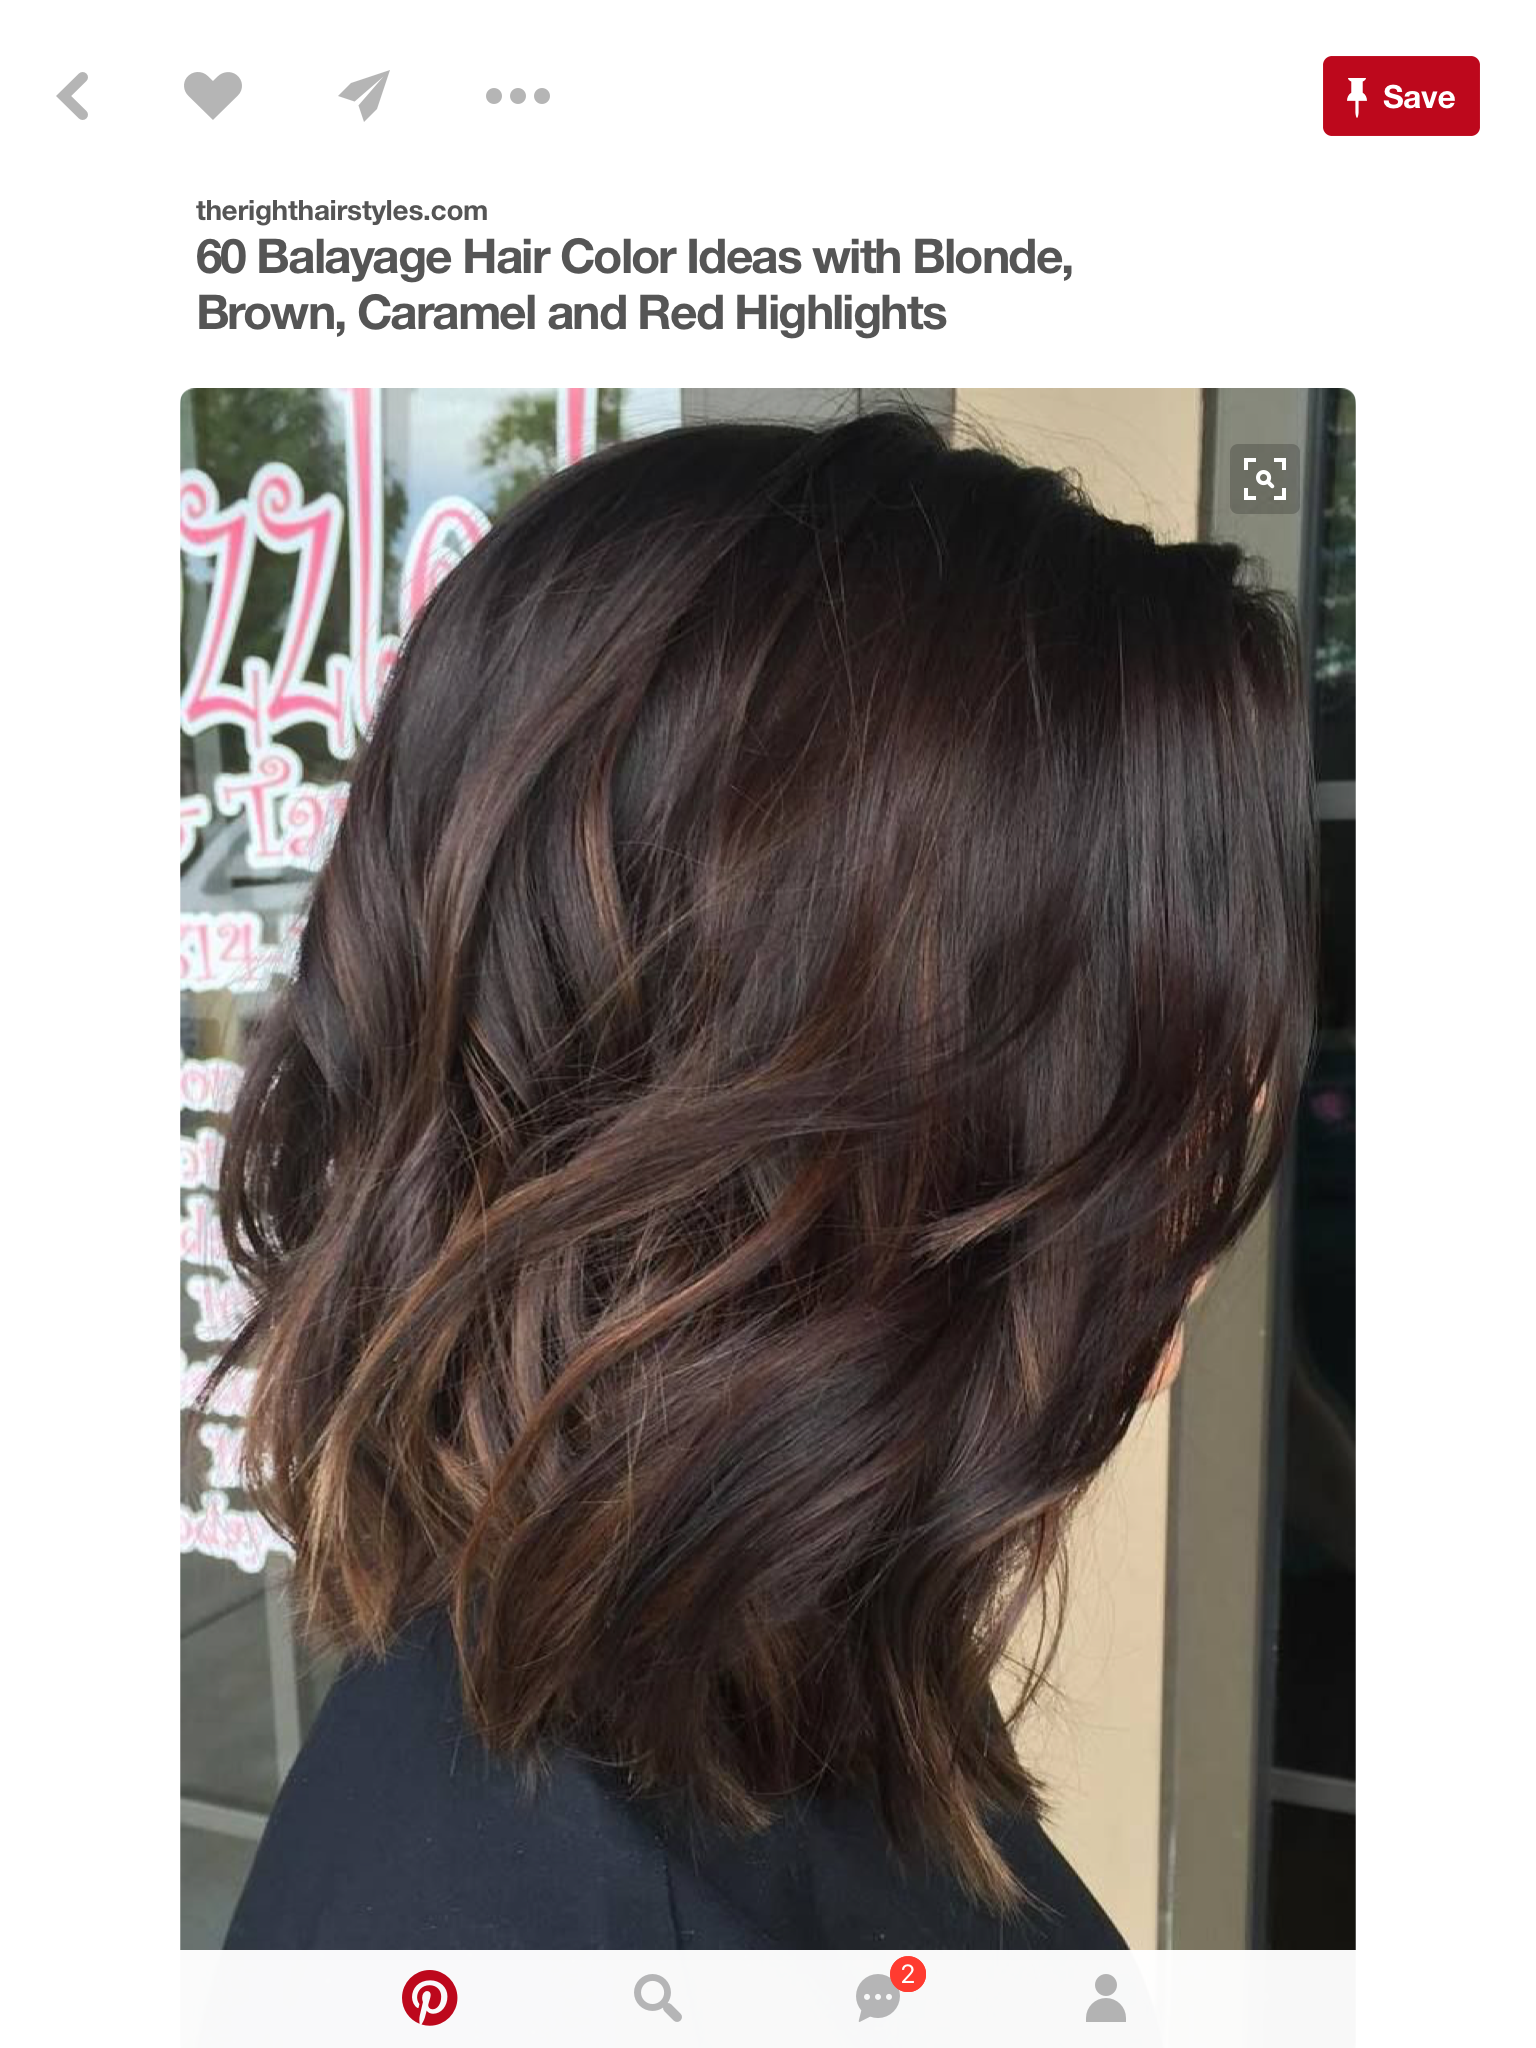 Pin by christy hannemann on hair colorsstyles pinterest hair